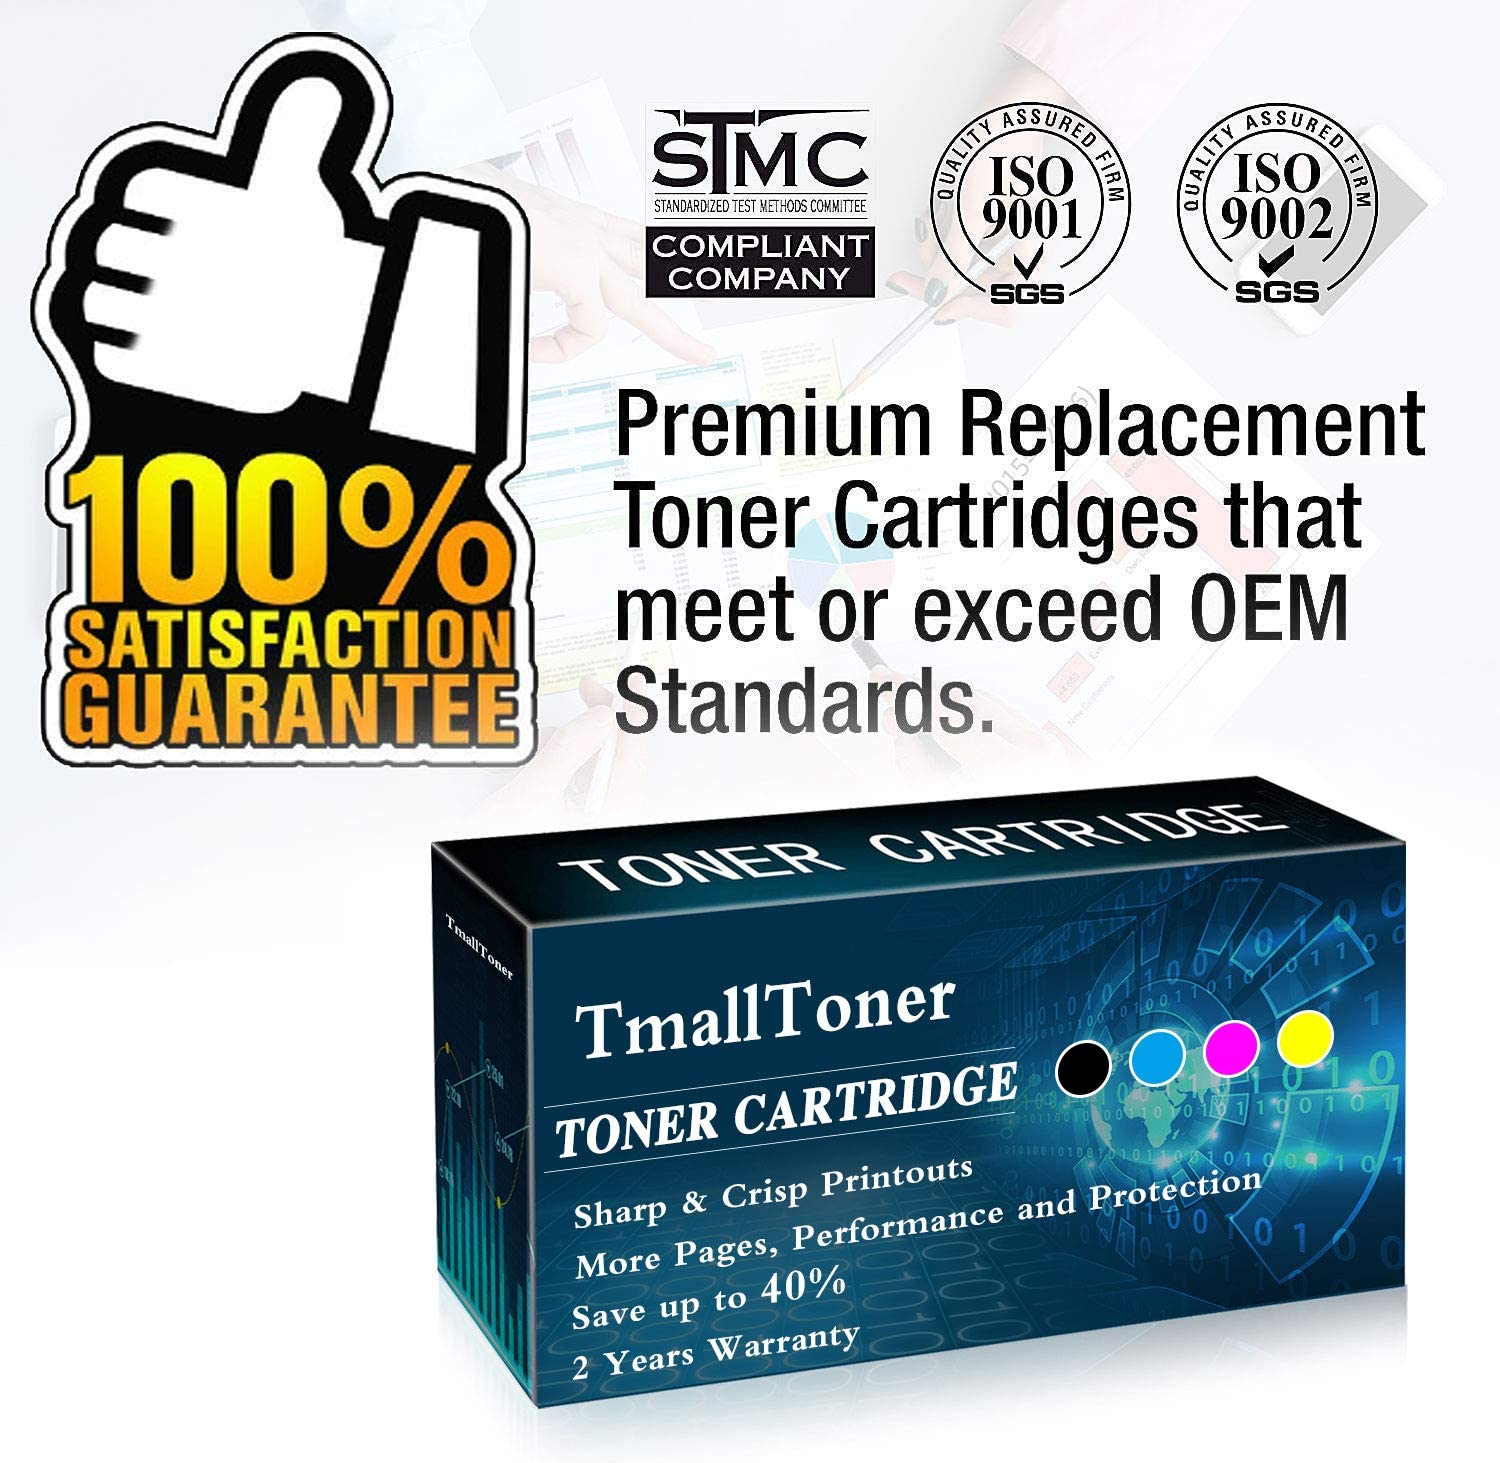 2 Pack Black 305X Sold by TmallToner CE410X Remanufactured Toner Cartridge High Yield Compatible for HP M351a M451nw M451dn M451dw MFP M475dn M475dw M375nw Printers